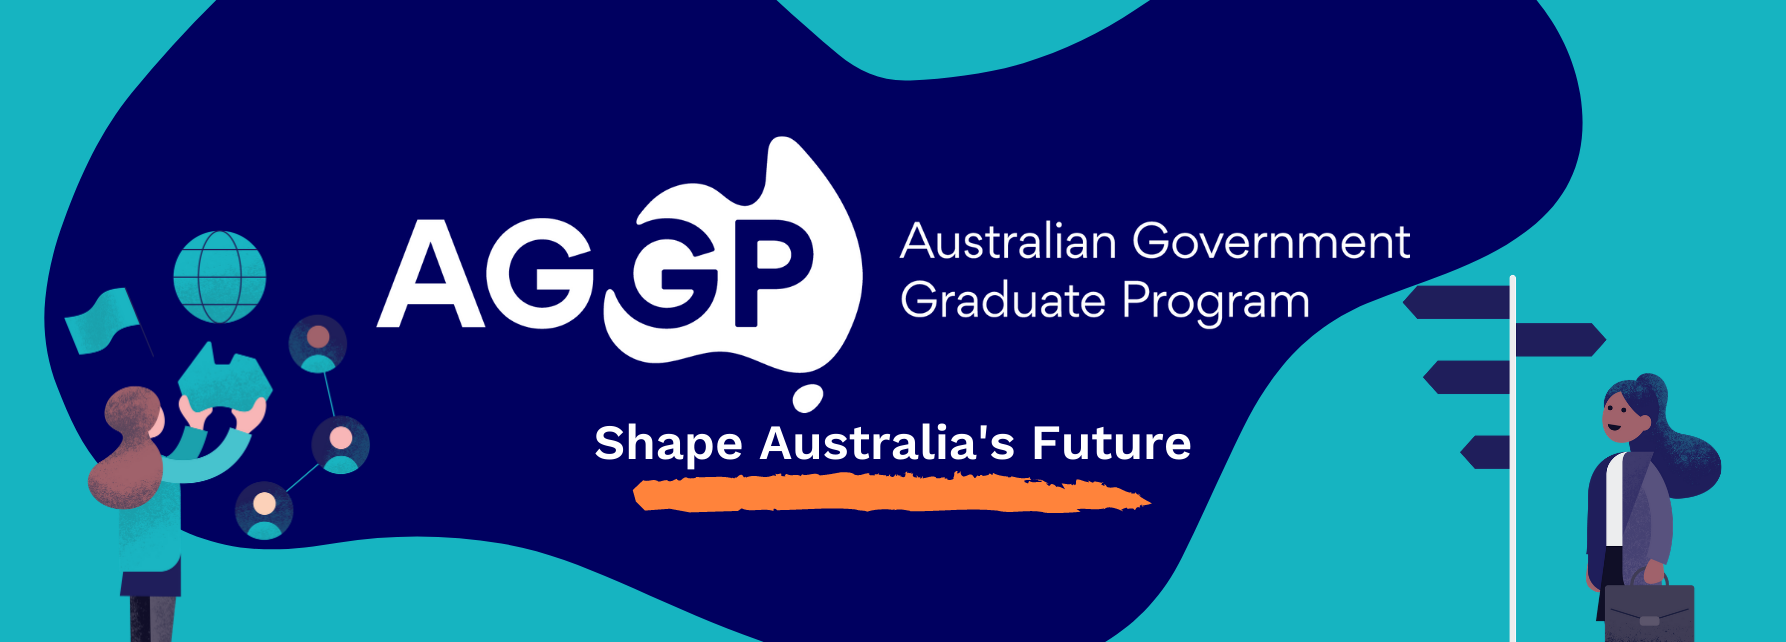 Australian Government Graduate Program profile banner profile banner